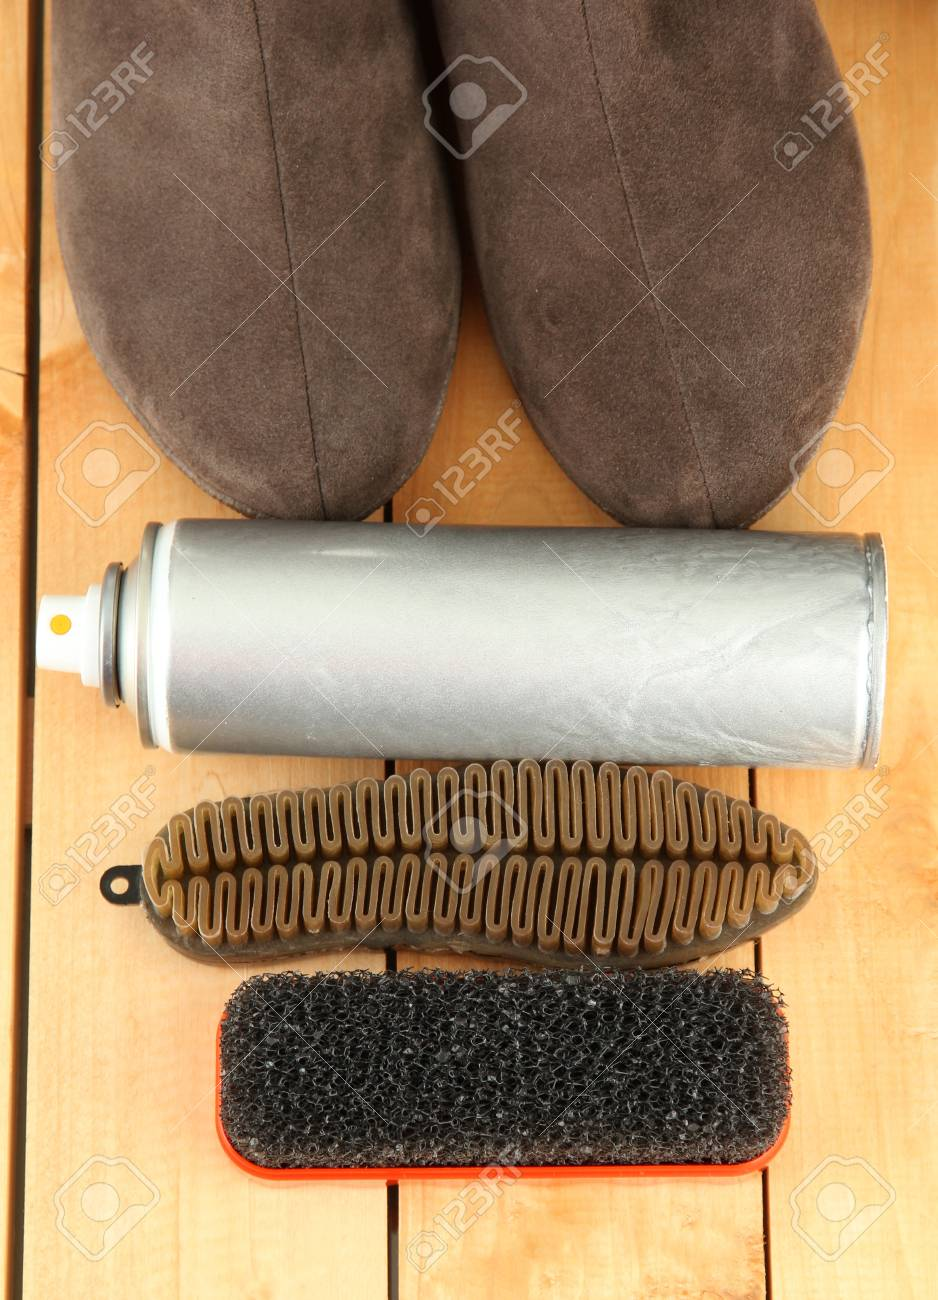 Set of stuff for cleaning and polish shoes, on wooden background Stock Photo - 17761030